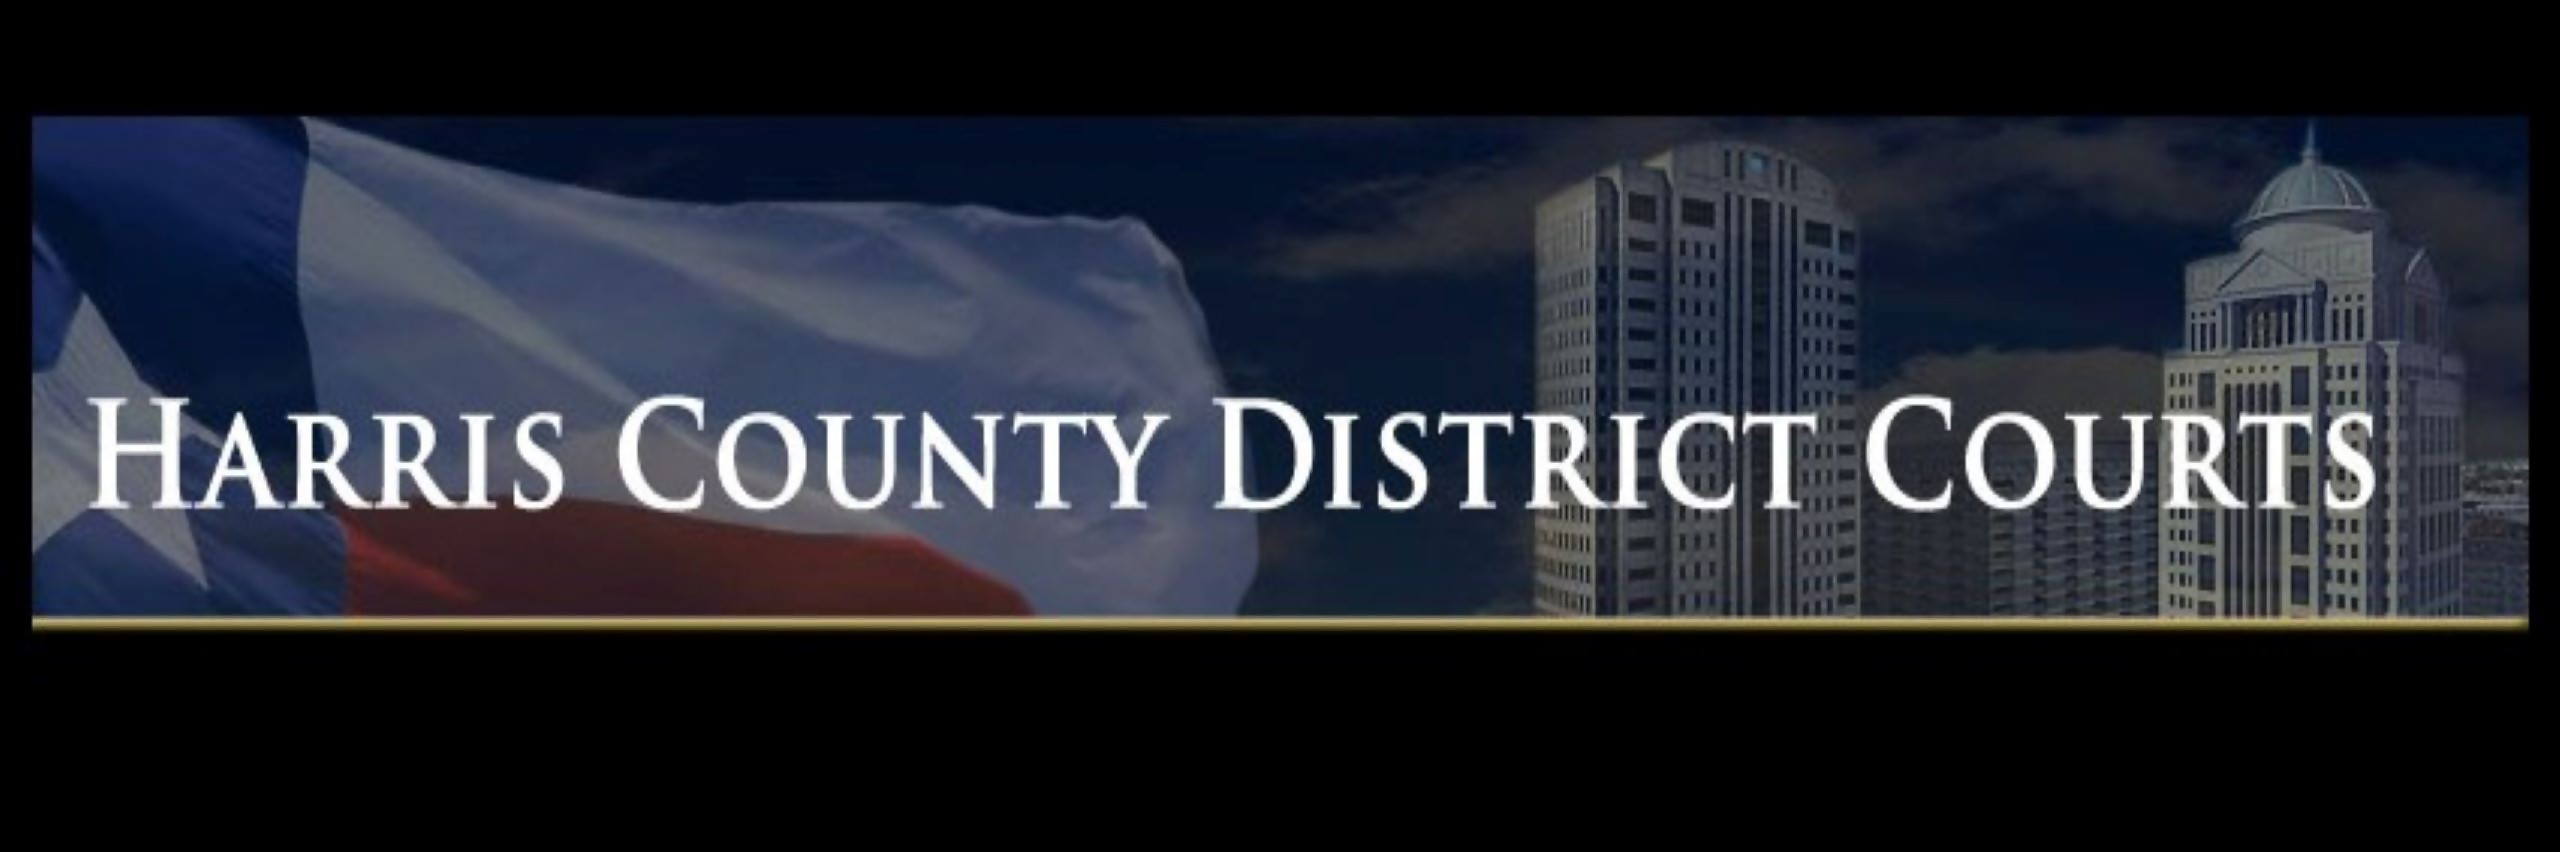 257th District Court AJ - Live Stream